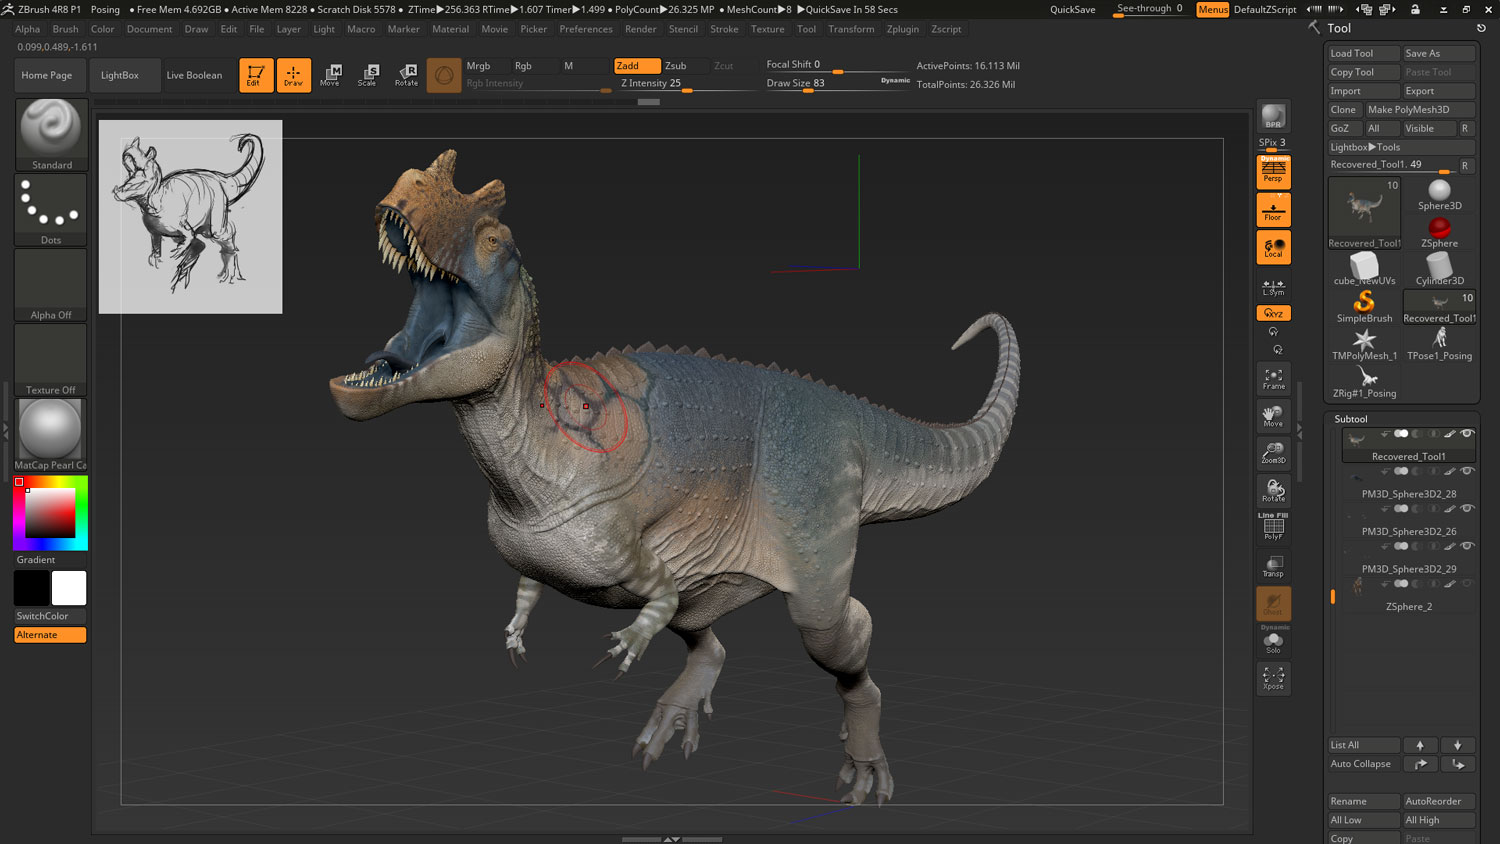 Sculpting the Perfect Digital Dino, With Raul Ramos - article